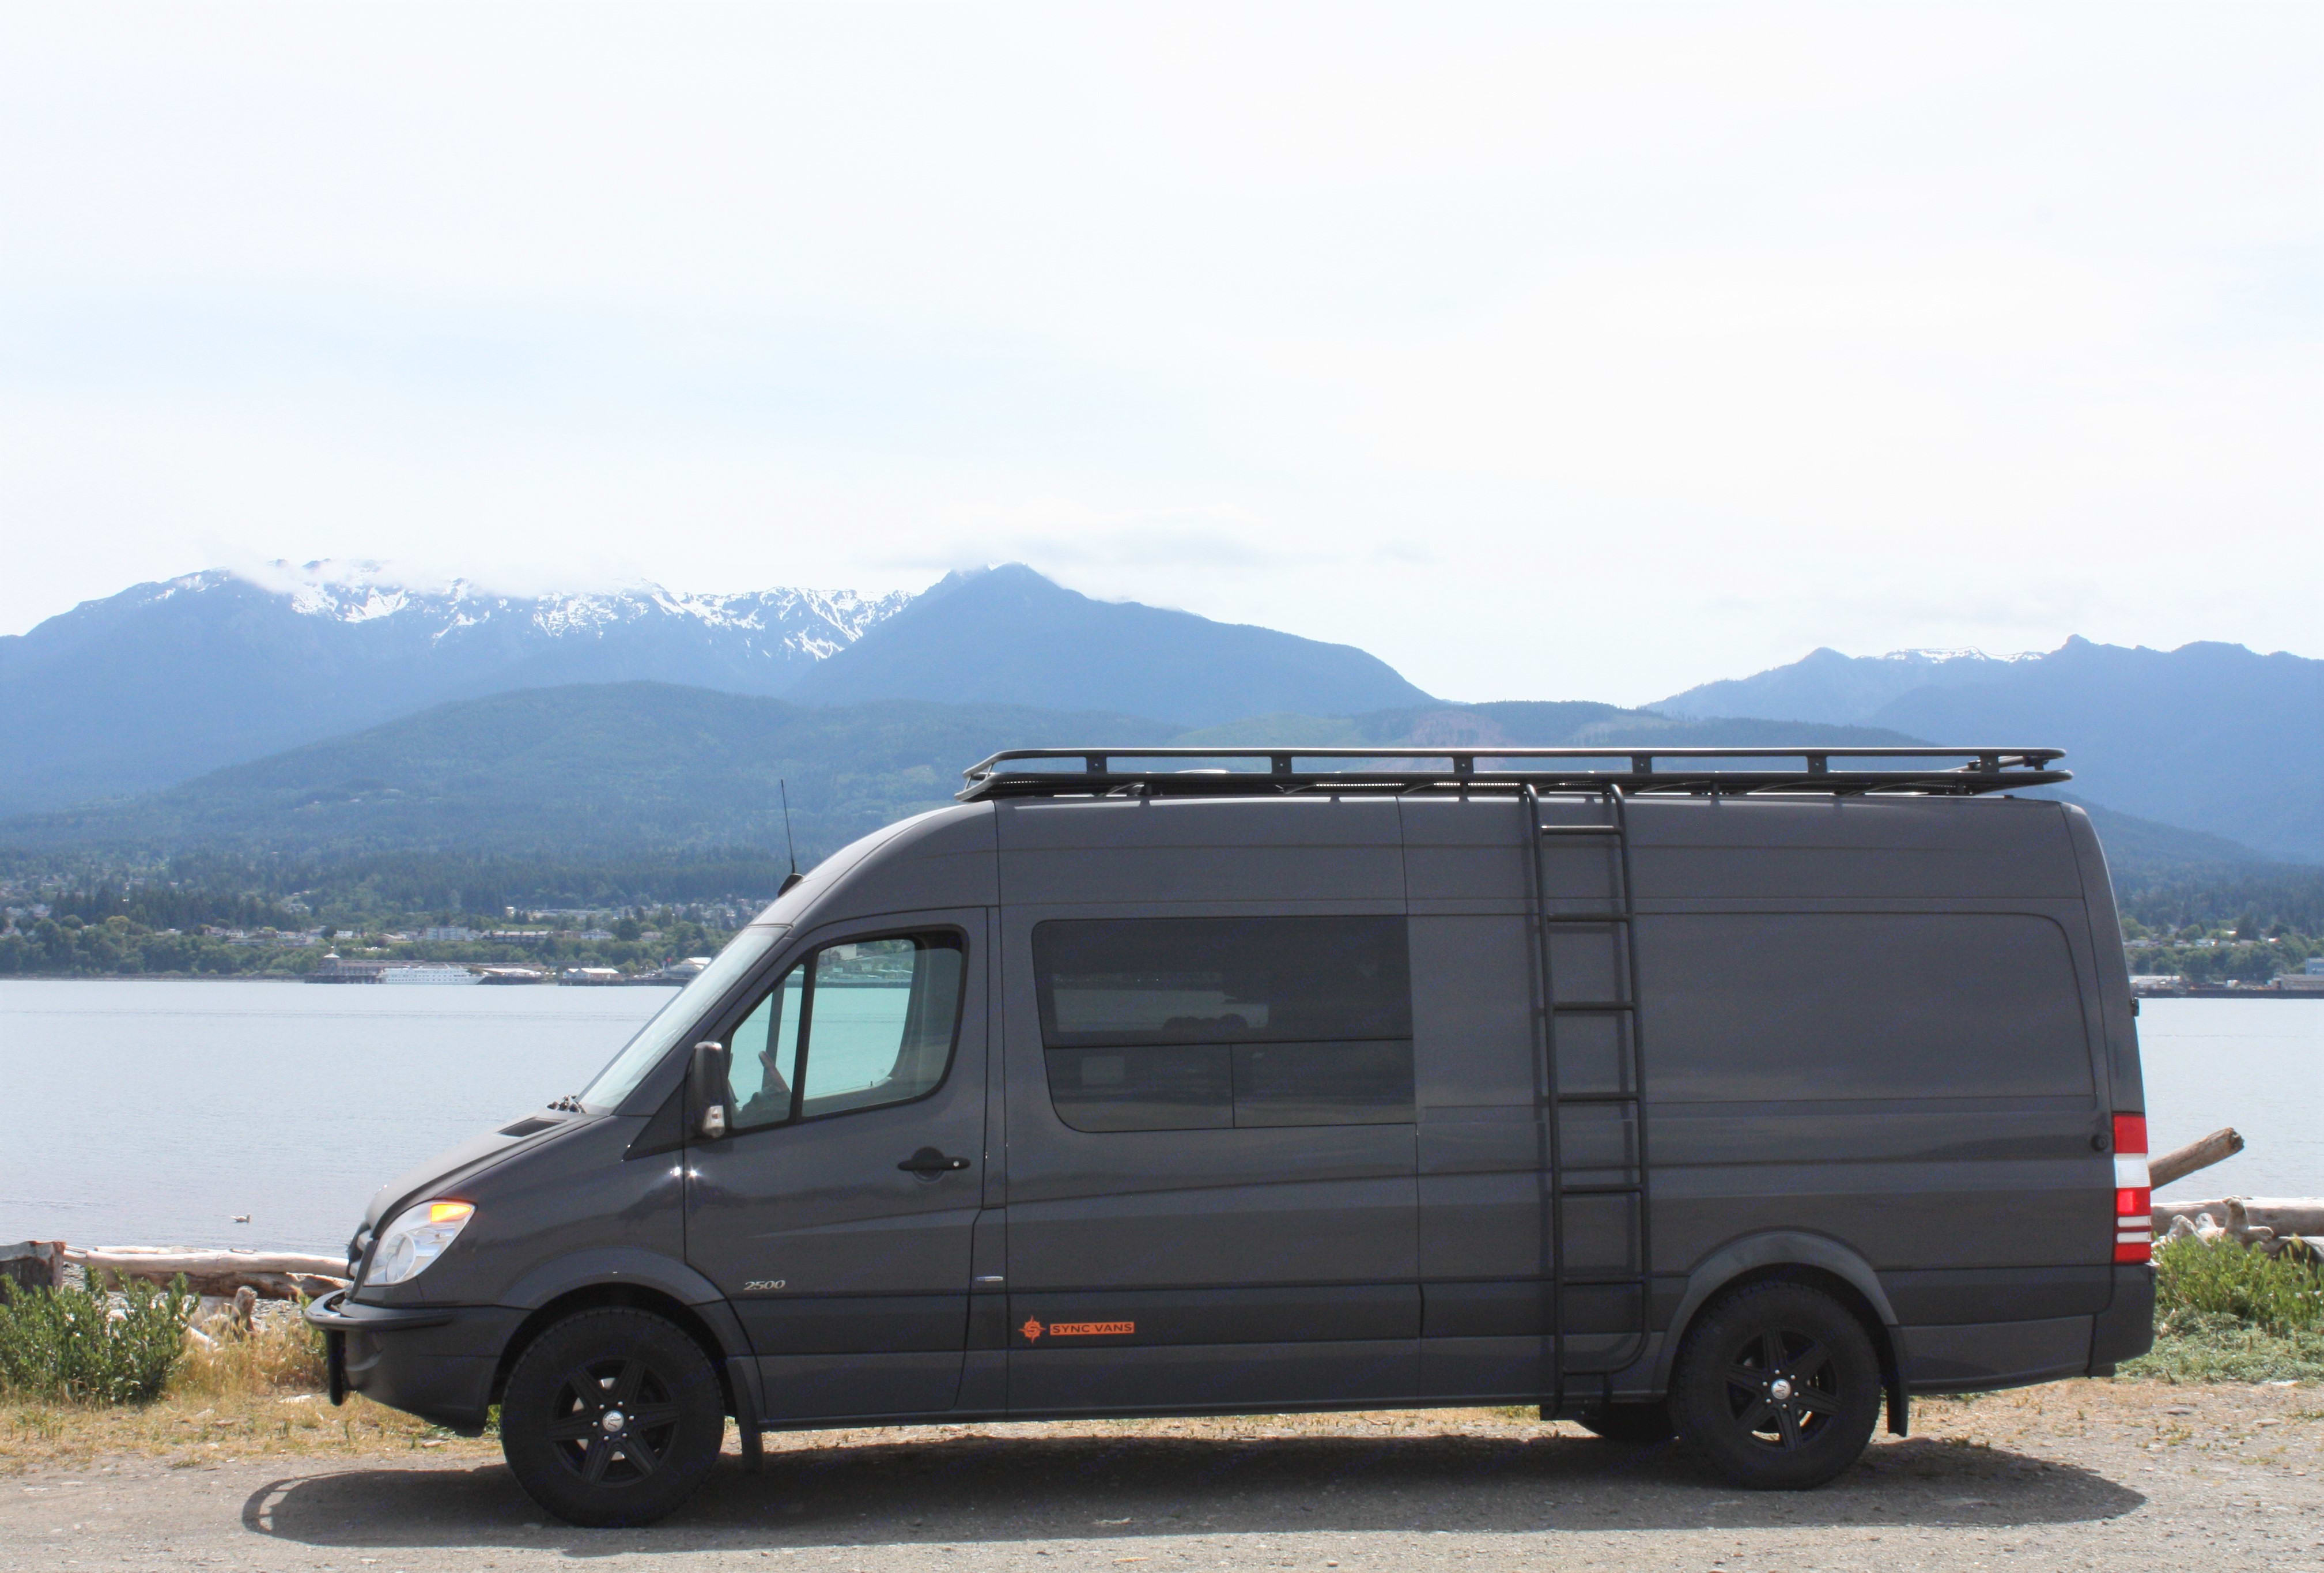 Hurricane Ridge in the background. All of this just an hour from our driveway.. Mercedes-Benz Sprinter 2013